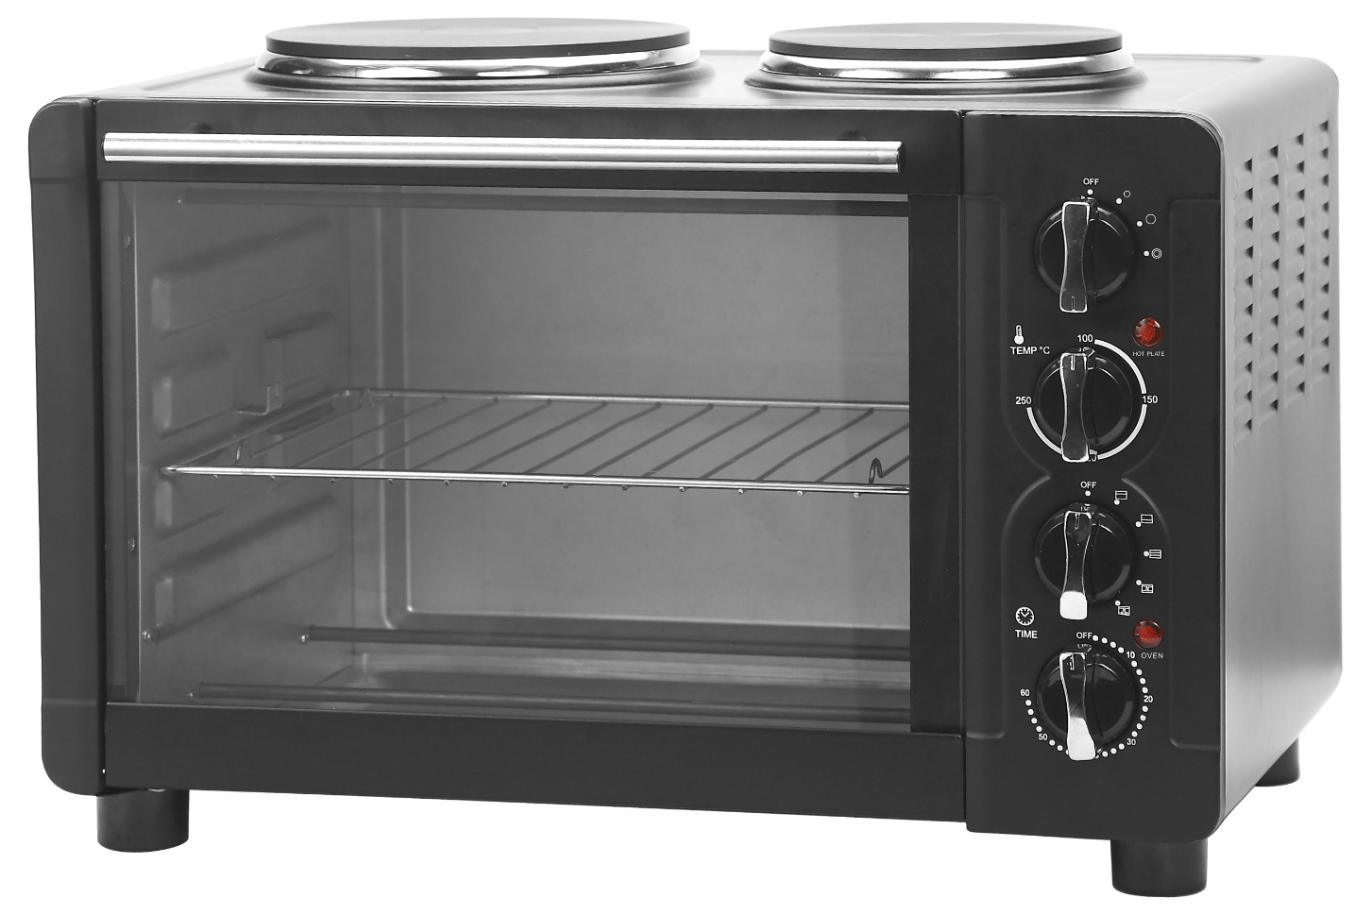 Toaster Oven with Hot Plate (30L)